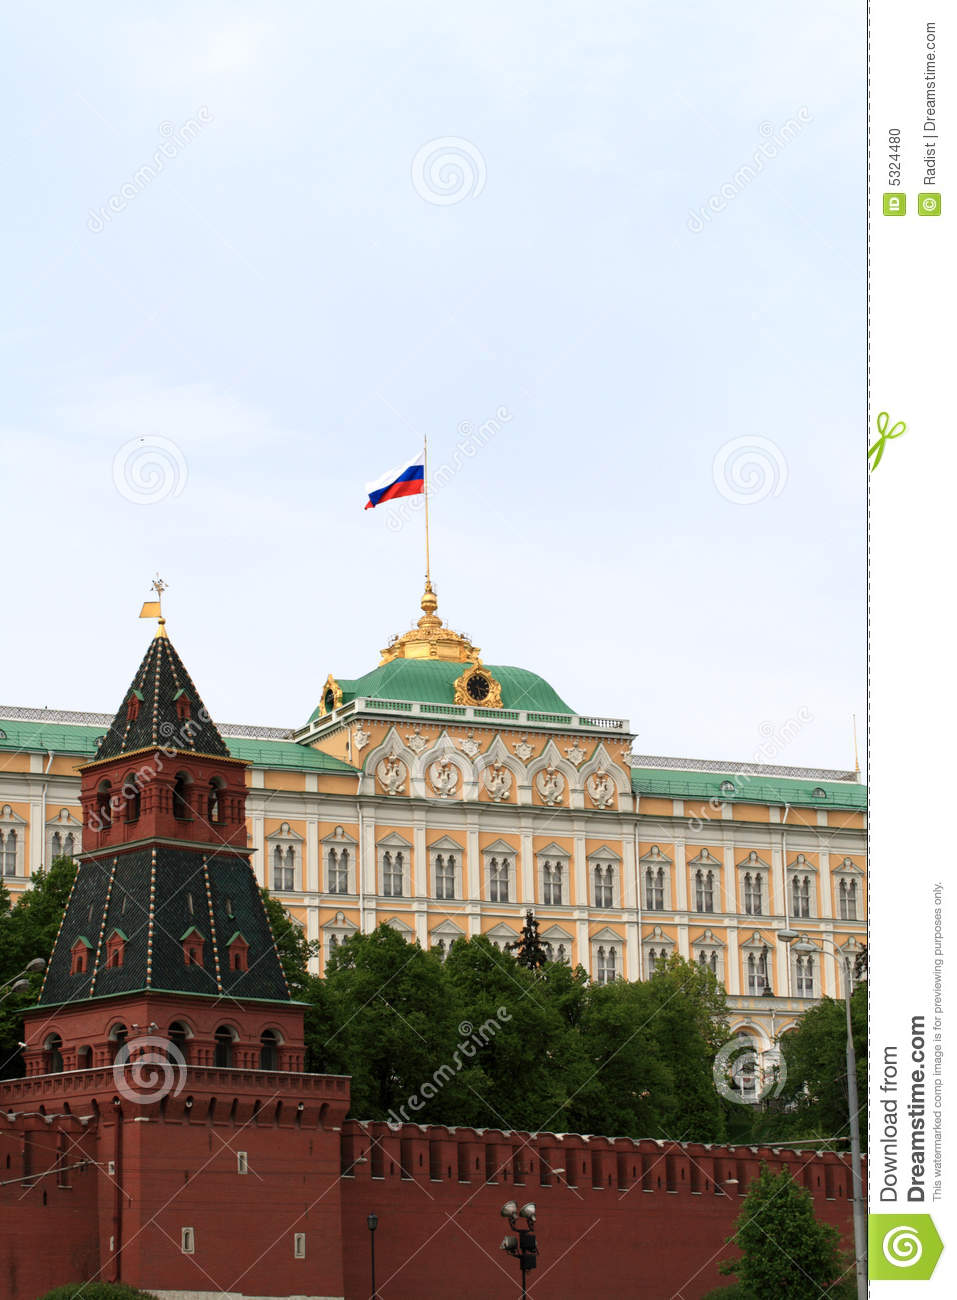 Download Parete di Kremlin fotografia stock. Immagine di cityscape - 5324480